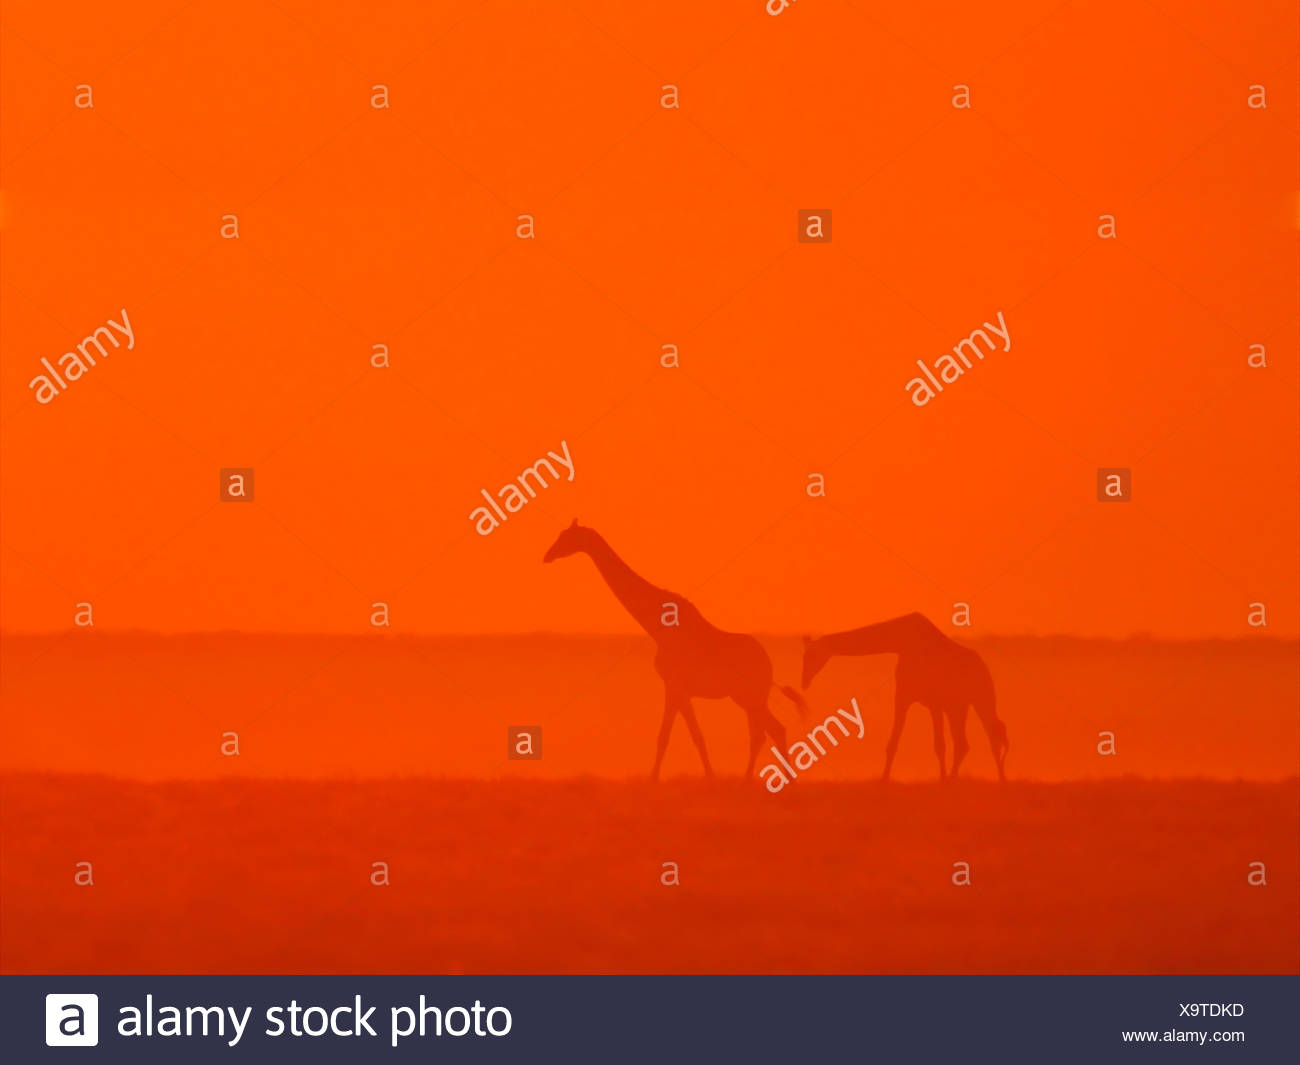 Giraffes walking at sunset - Stock Image